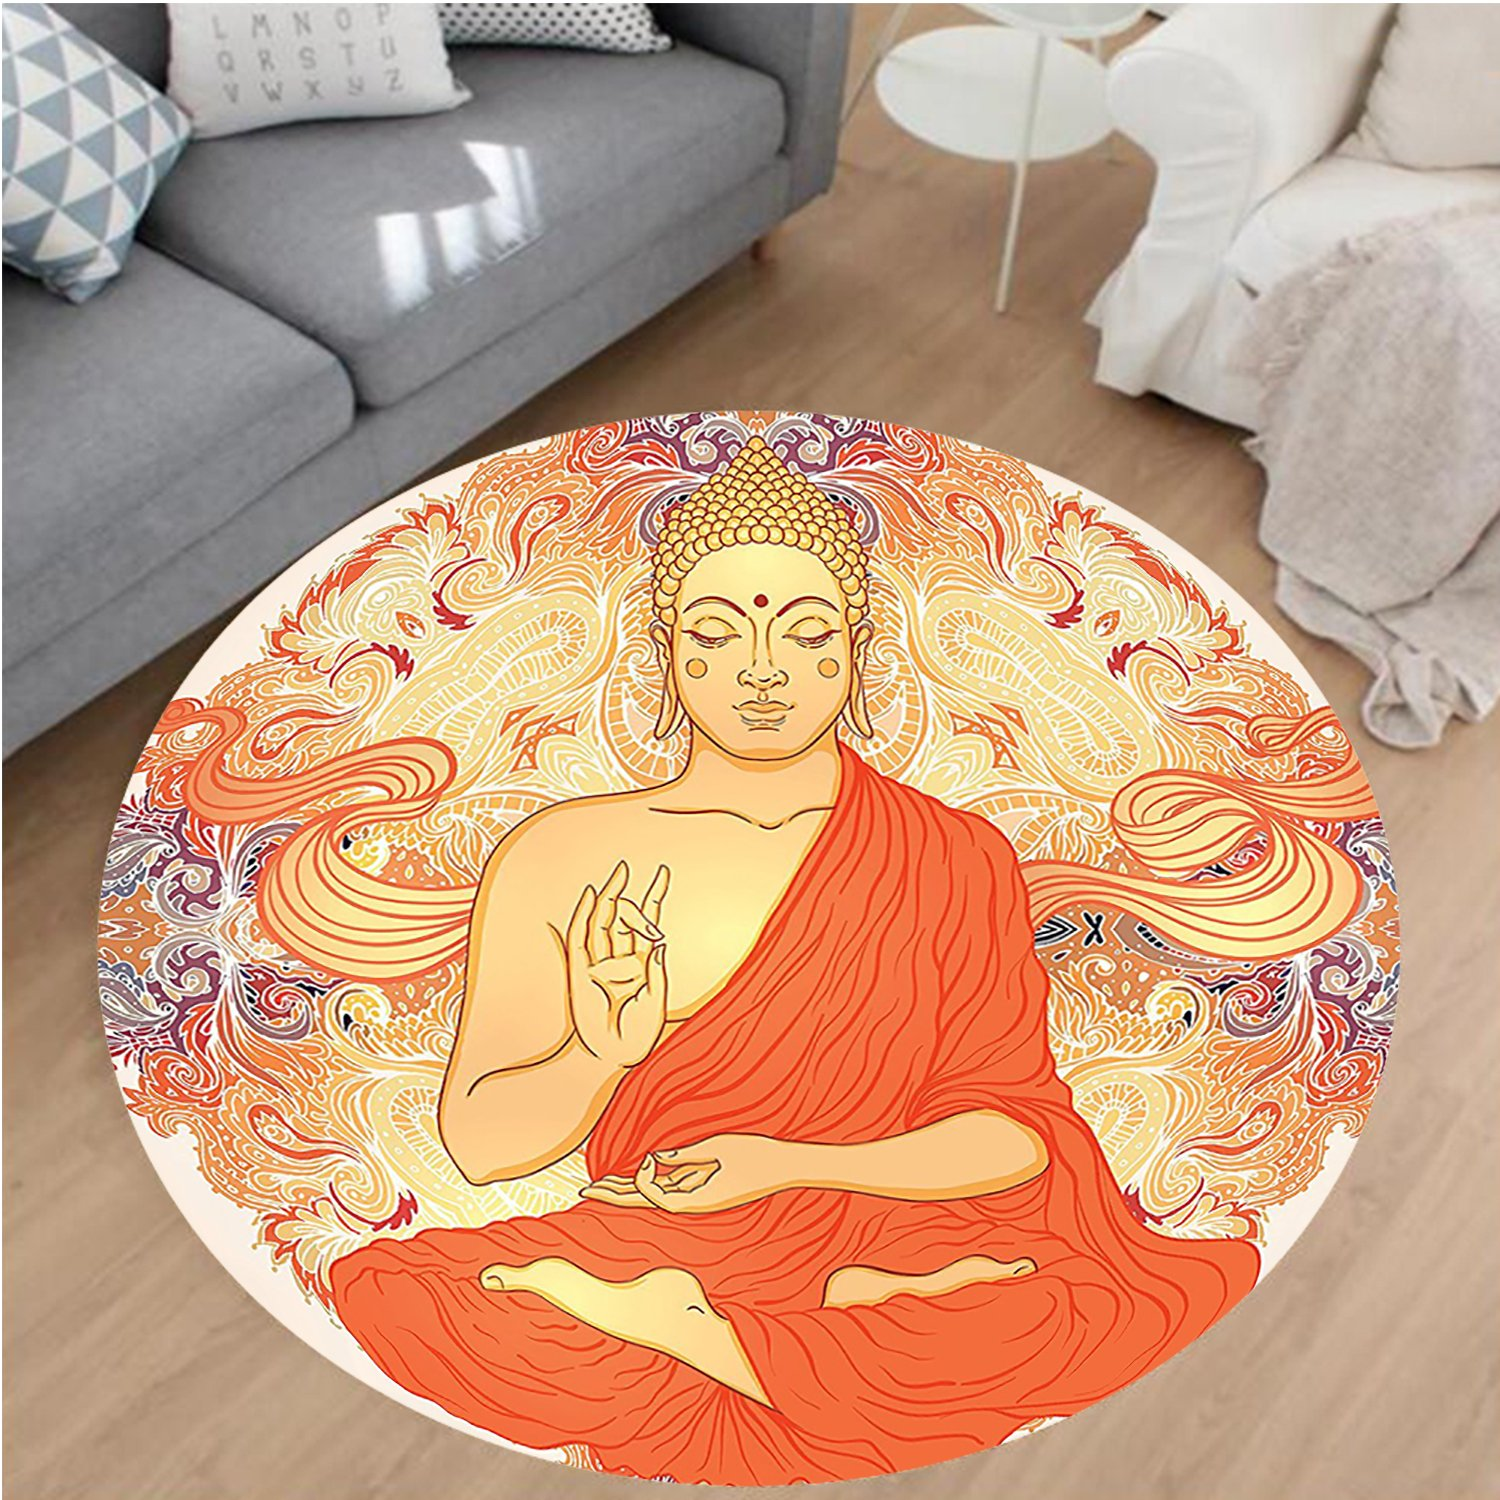 Nalahome Modern Flannel Microfiber Non-Slip Machine Washable Round Area Rug-ation Aura Thai Temple Ornamental Motive Spiritual Design Print Accessories Orange Purple area rugs Home Decor-Round 71'' by Nalahome